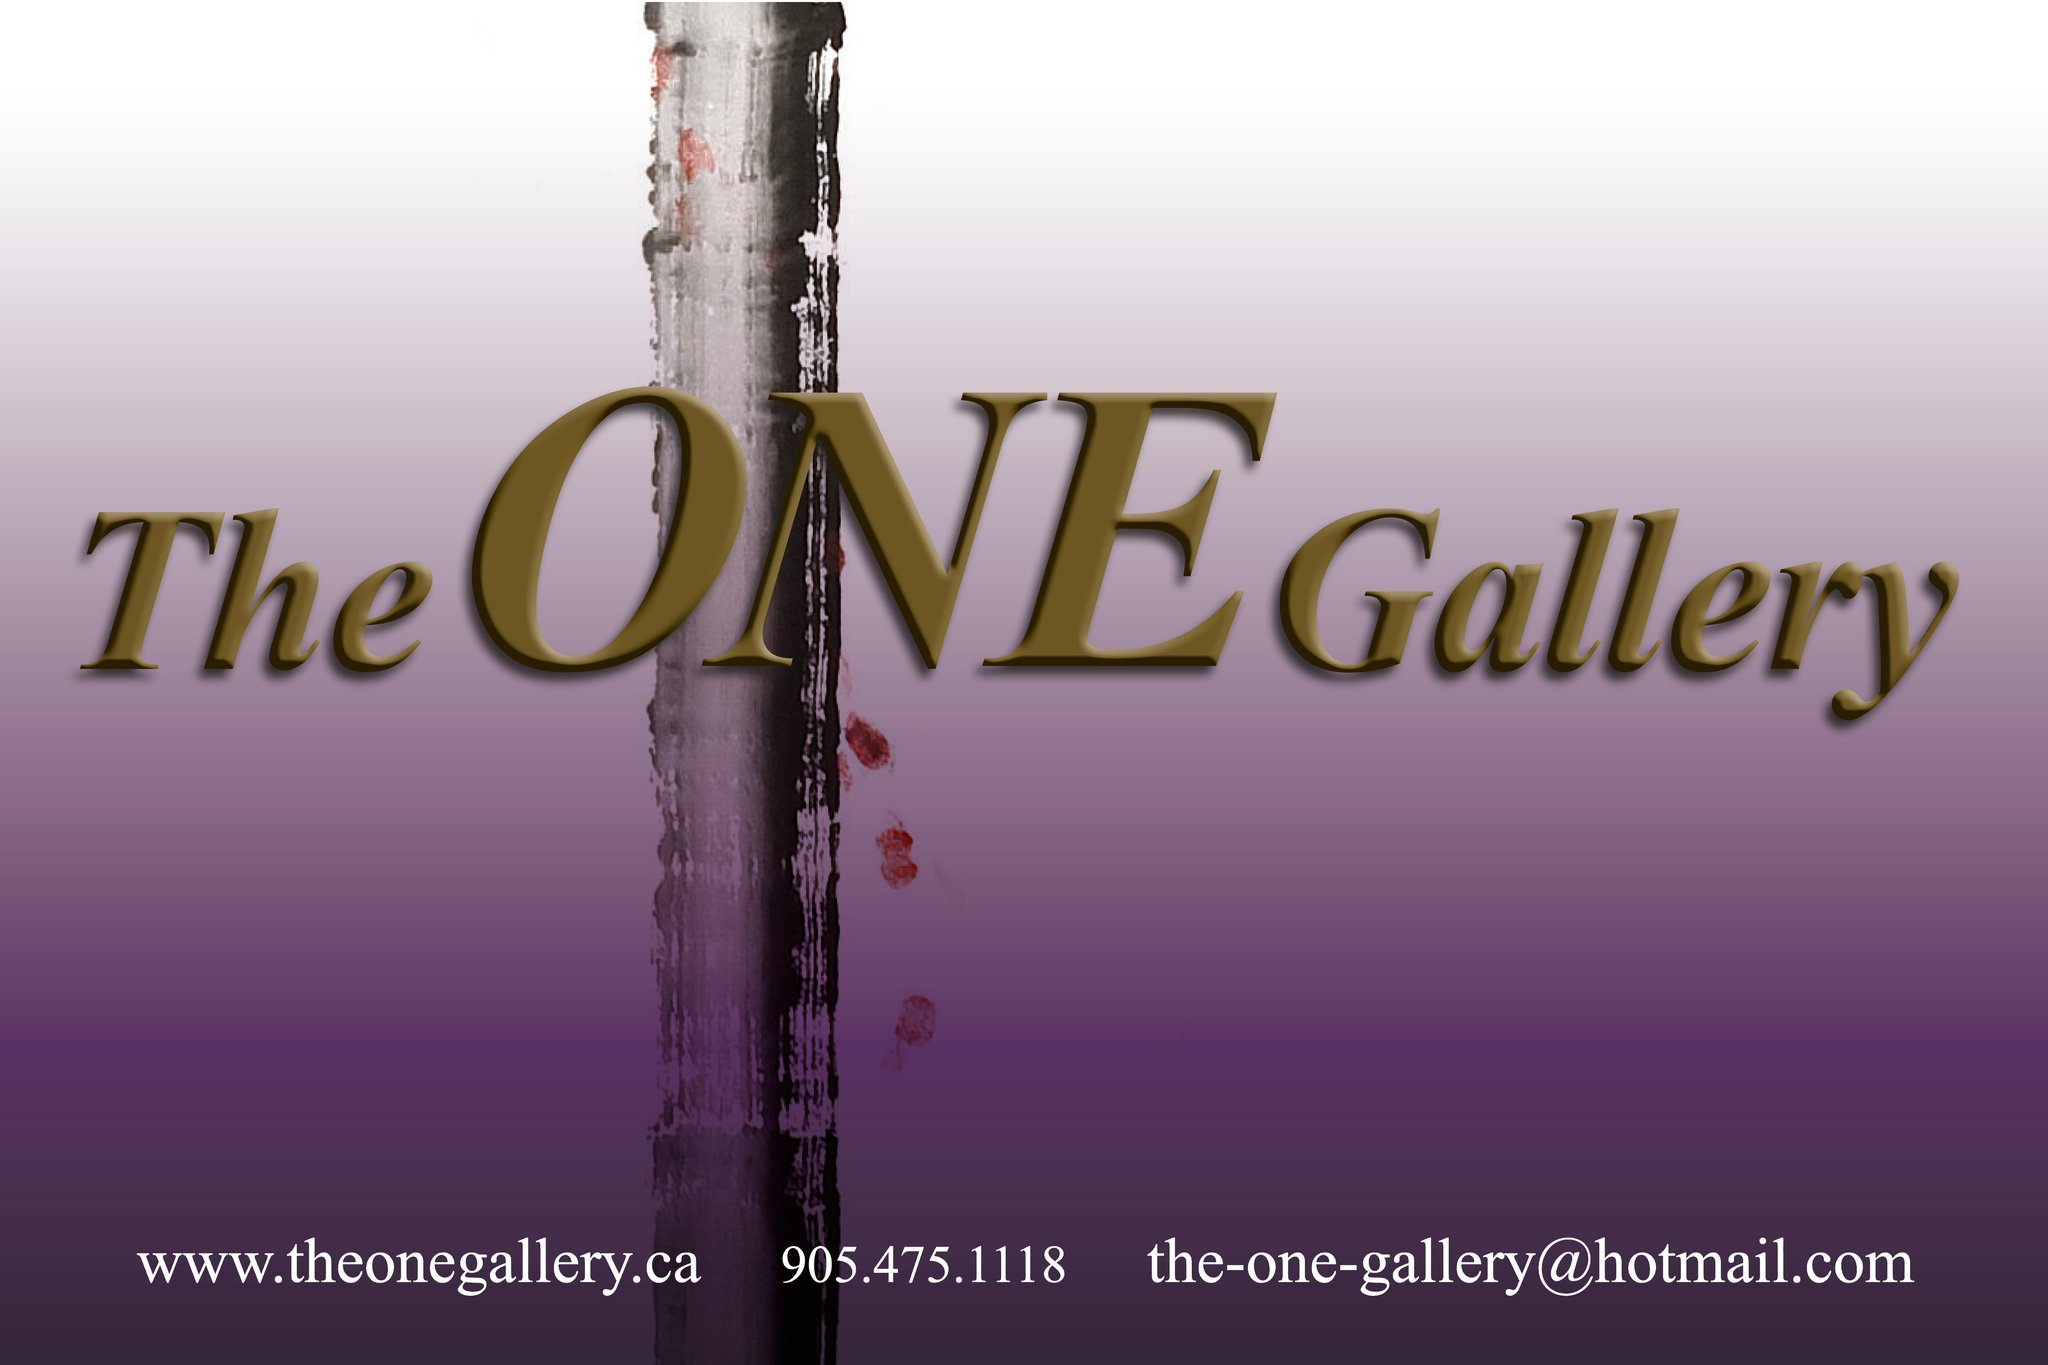 The One Gallery